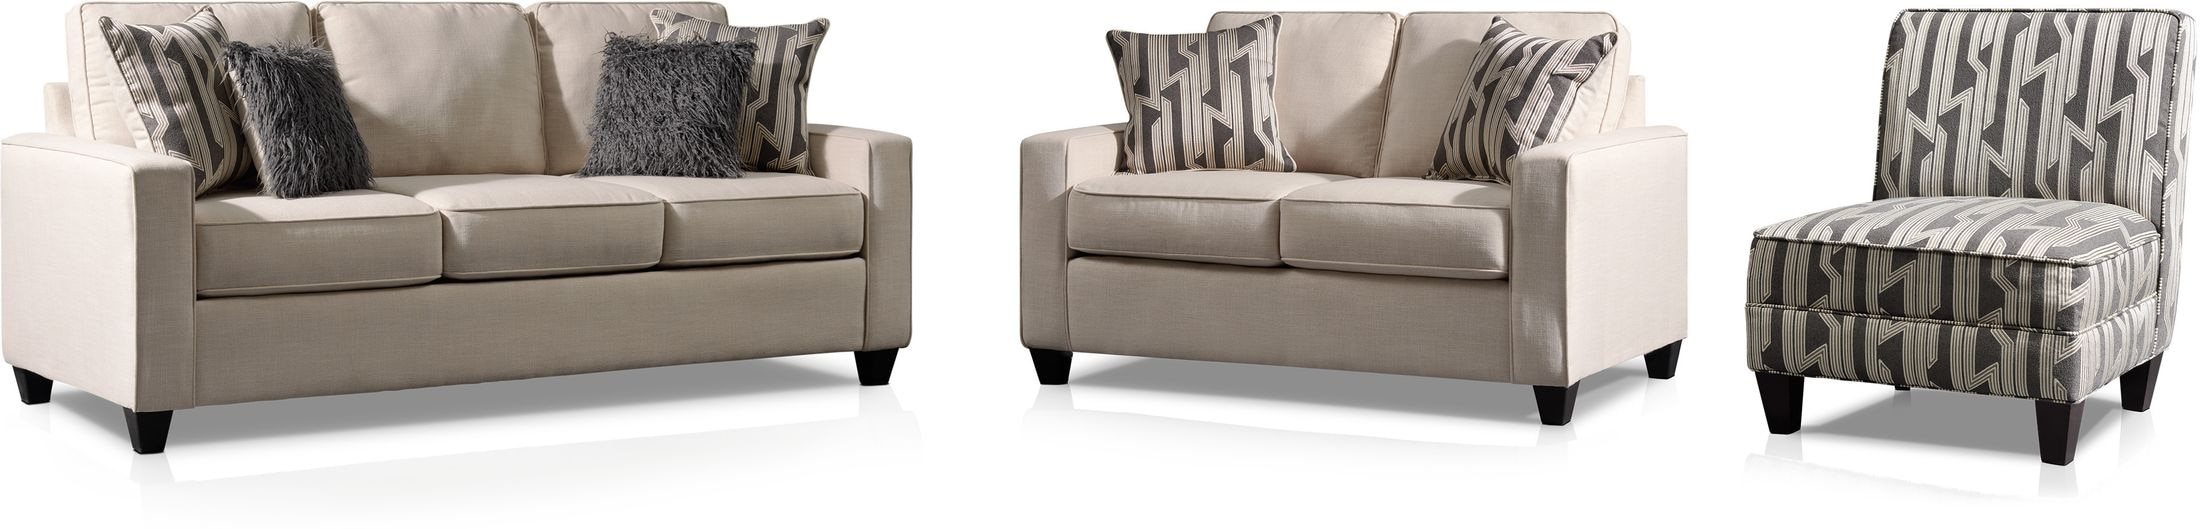 Living Room Furniture - Burton Sofa, Loveseat and Accent Chair